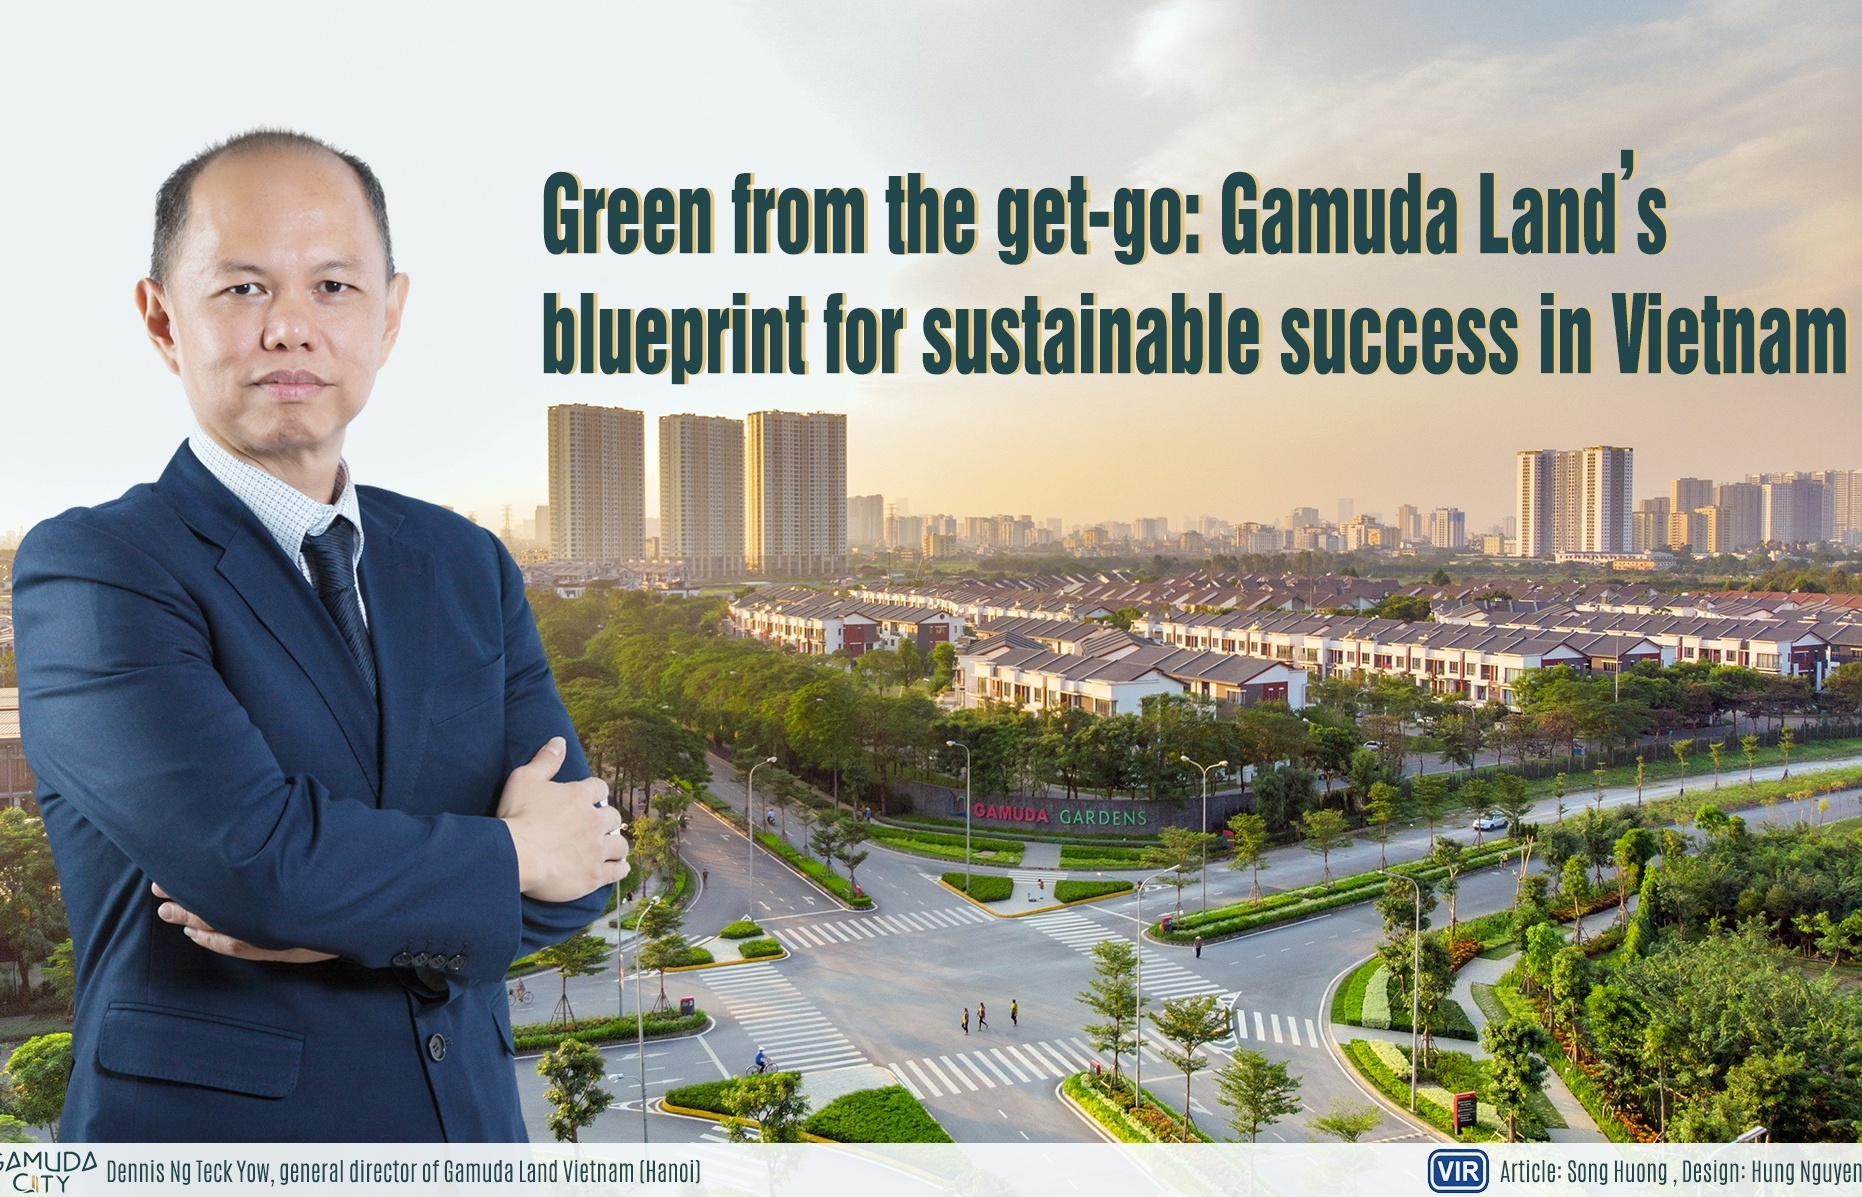 Green from the get-go: Gamuda Land's blueprint for sustainable success in Vietnam